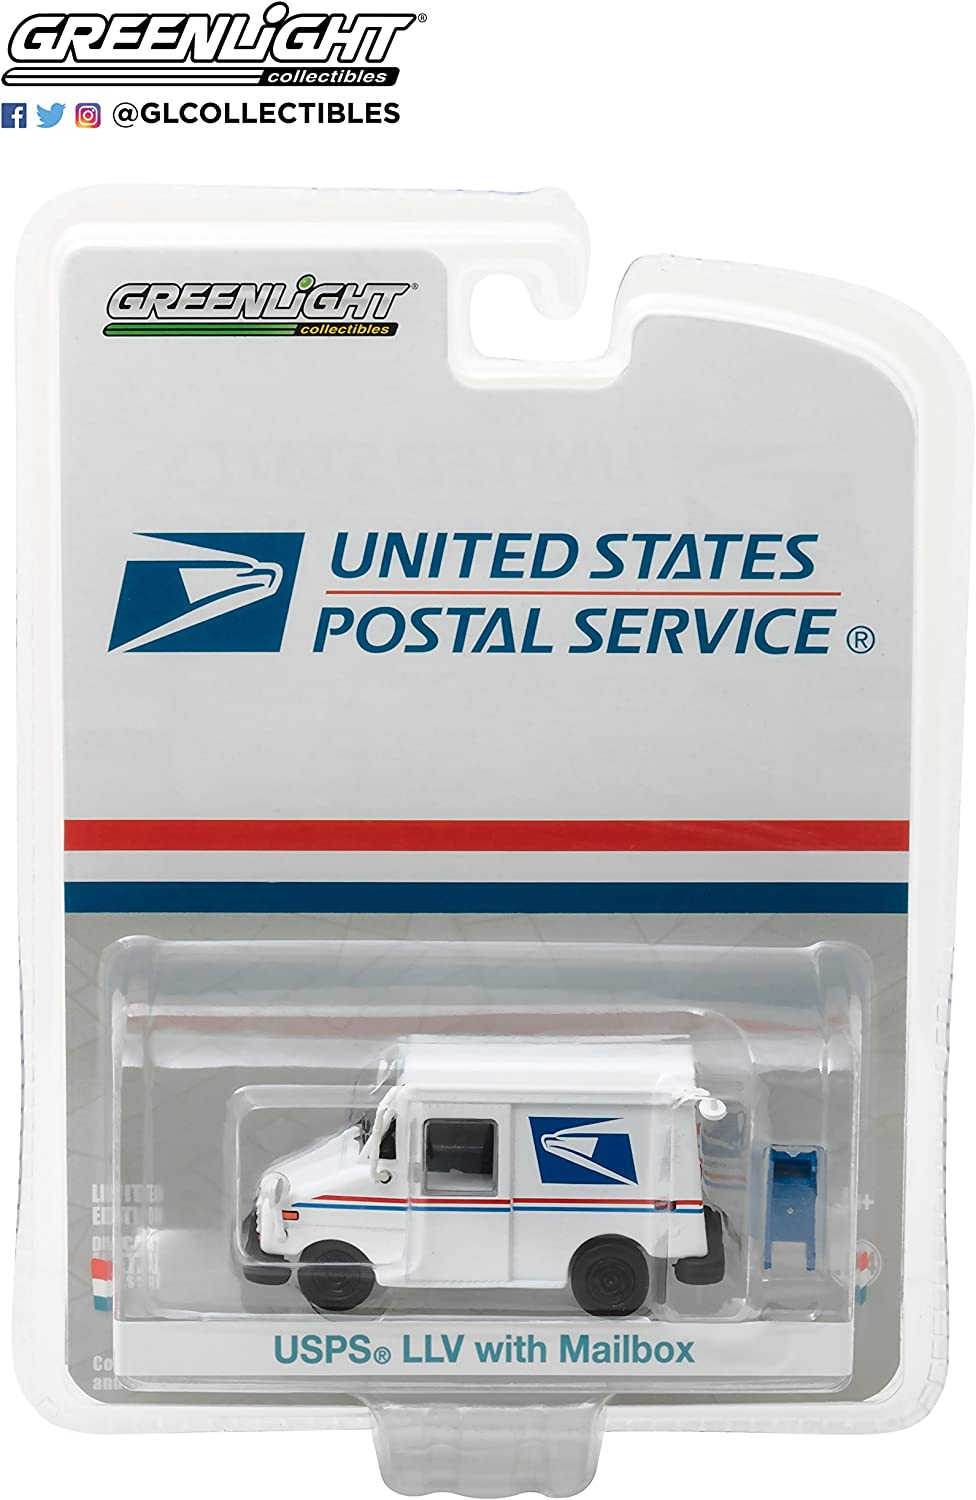 Greenlight 29888 USPS LLV Long-Life Postal Delivery Vehicle 1:64 Scale Diecast with Mailbox